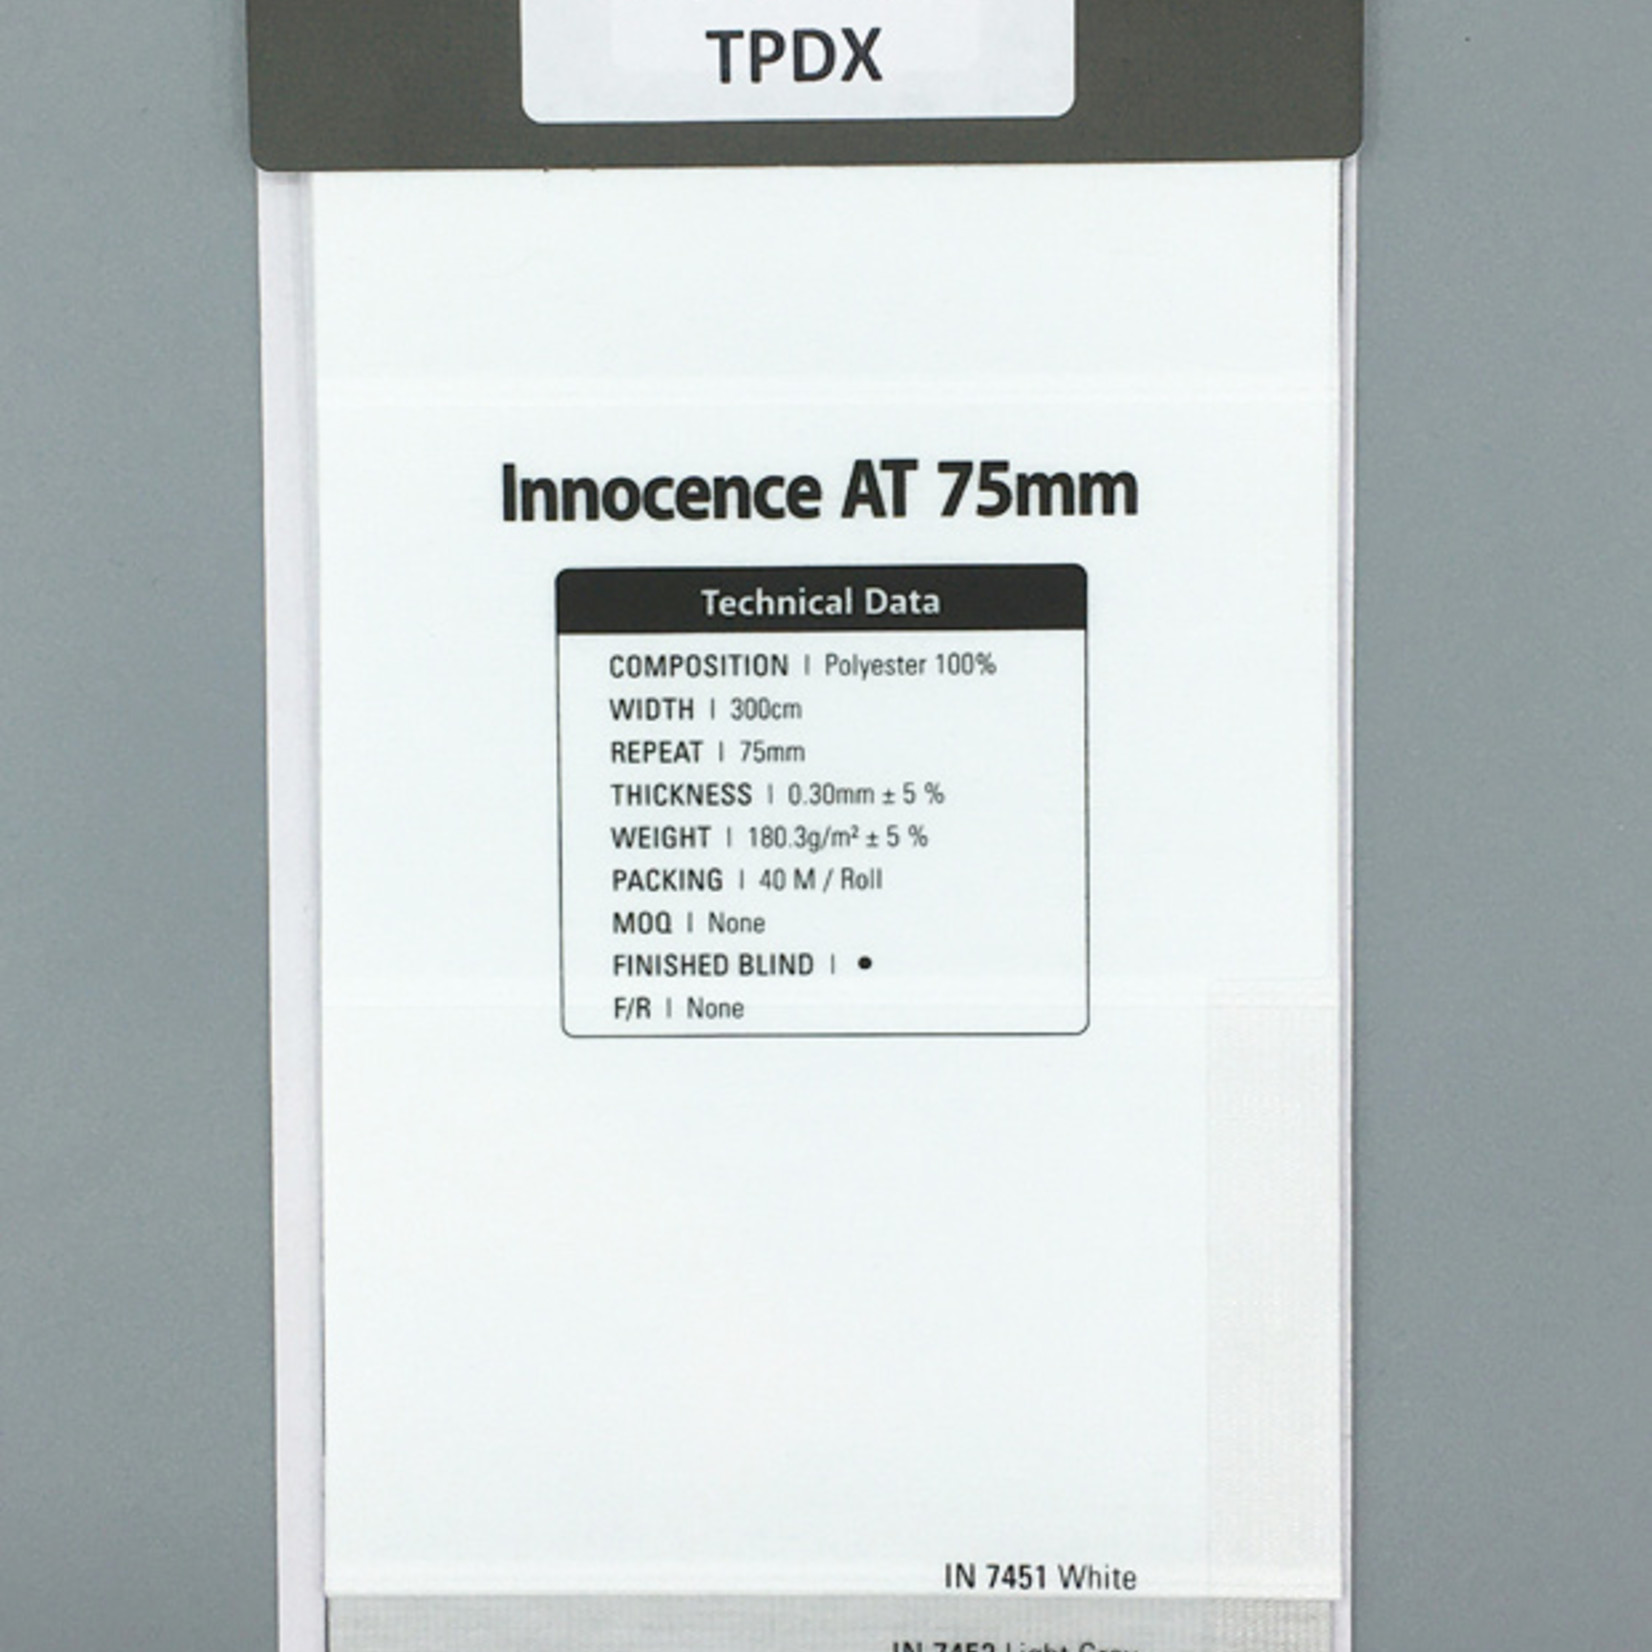 Trendy Blinds - MT Triple Shade Innocence AT 75mm